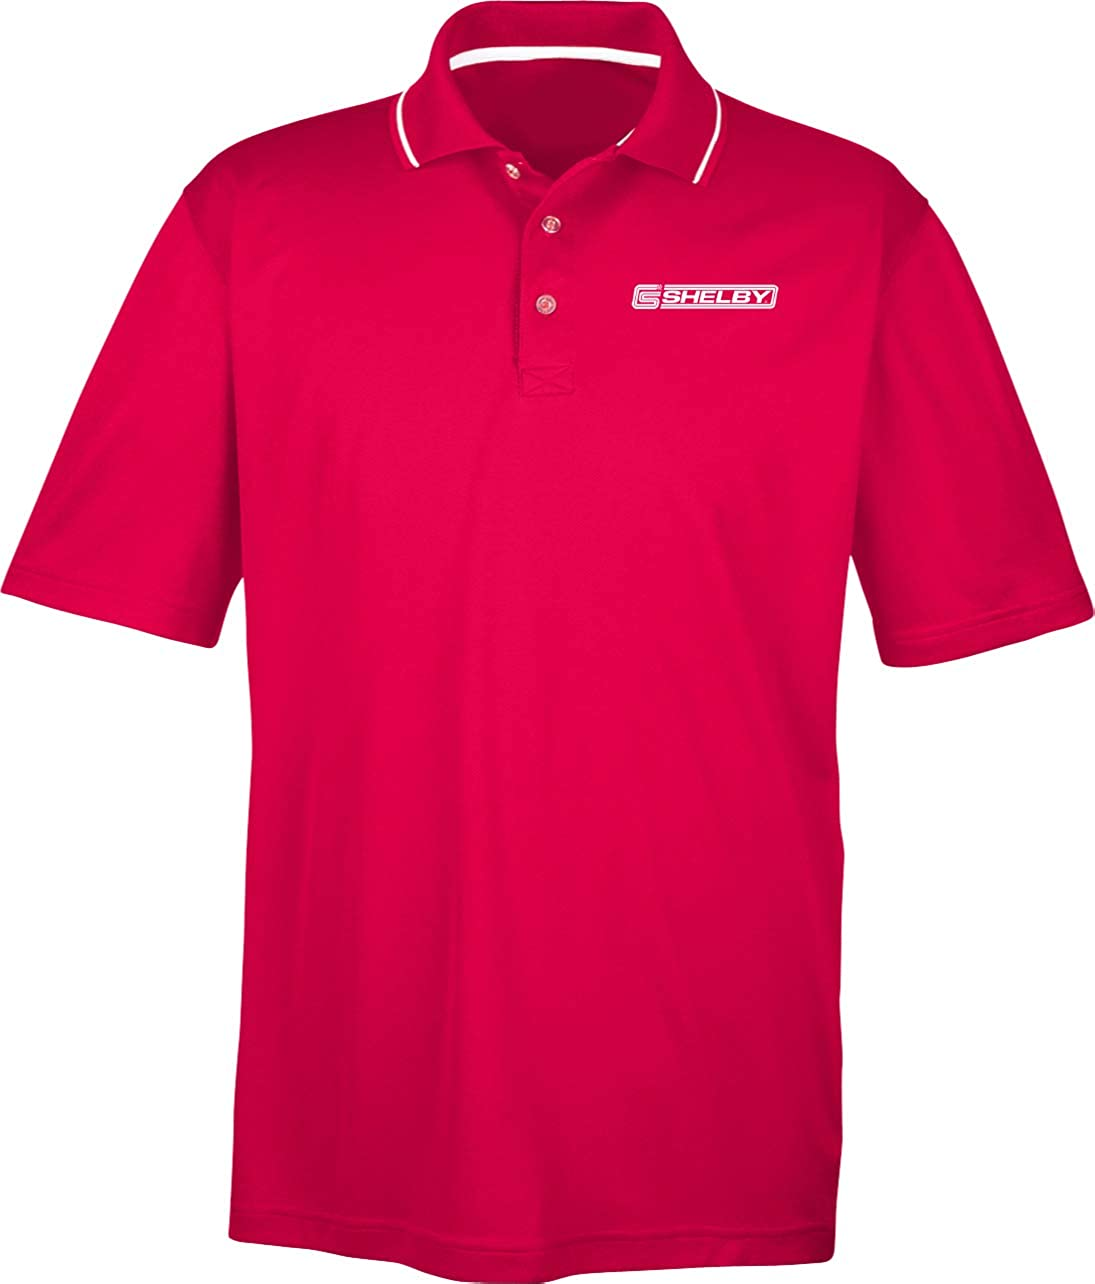 Ford Mustang Shelby Crest Pocket Print Two Tone Polo, Red 3XL